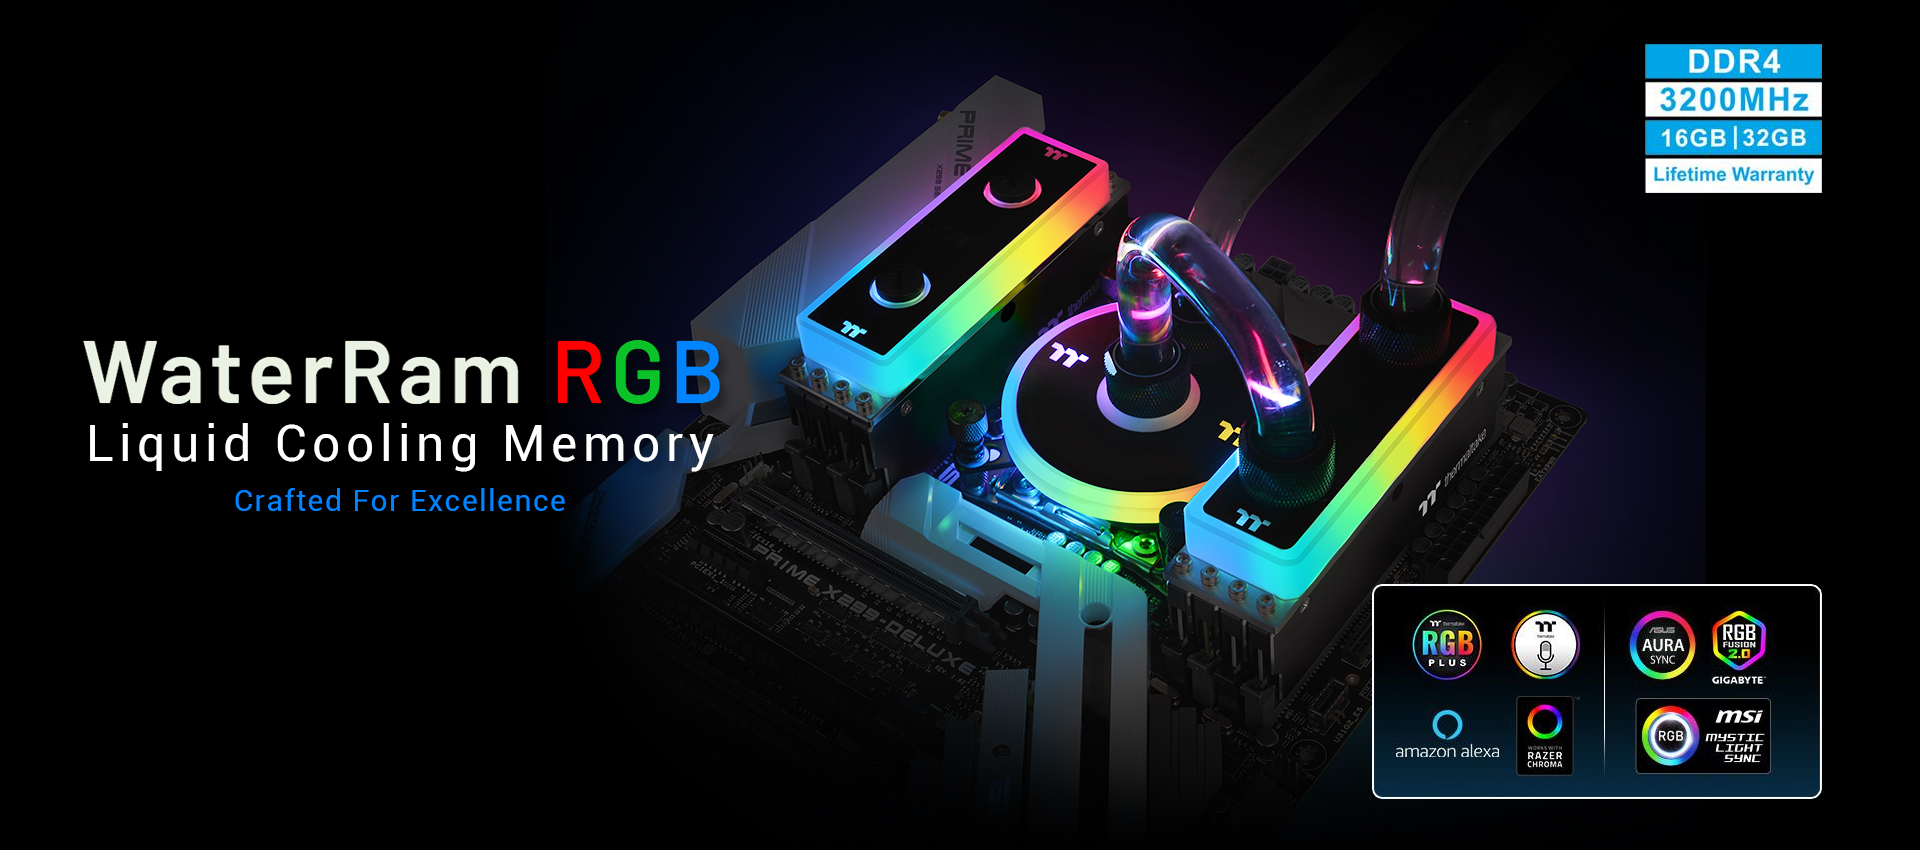 WaterRam RGB Liquid Cooling Memory